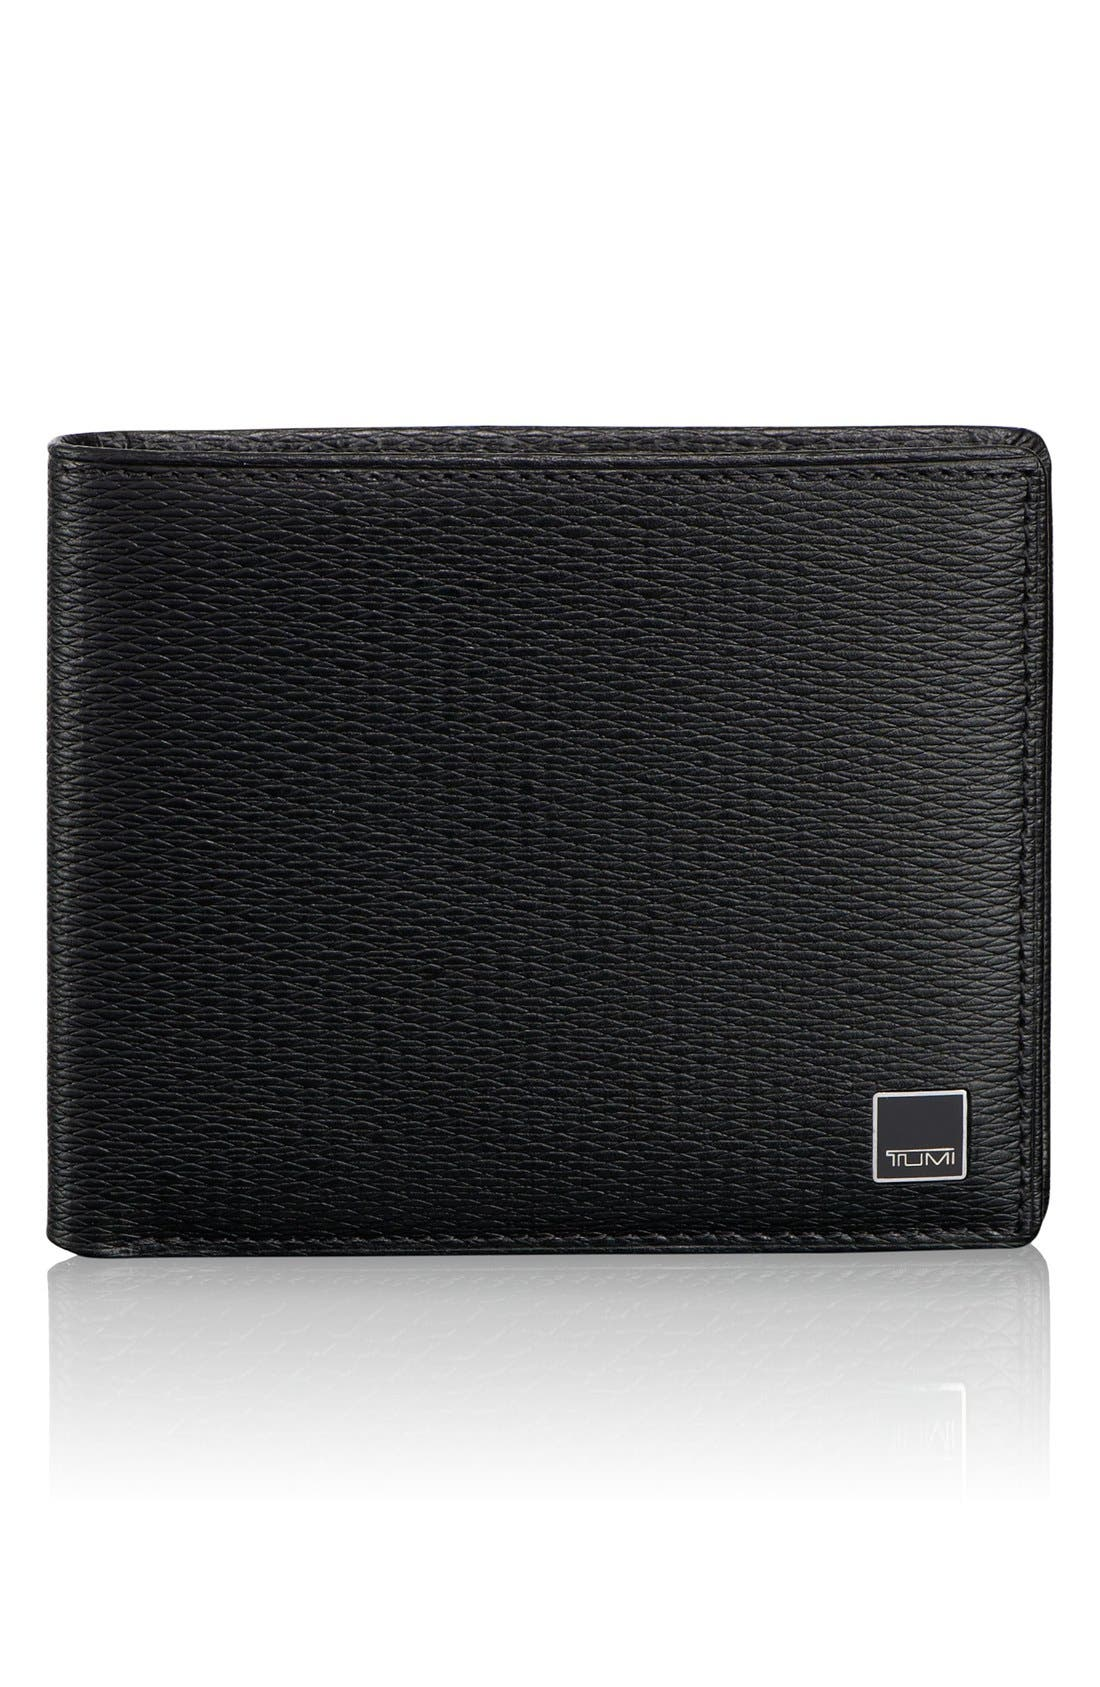 Alternate Image 1 Selected - Tumi 'Monaco - Global' Wallet with Coin Pocket